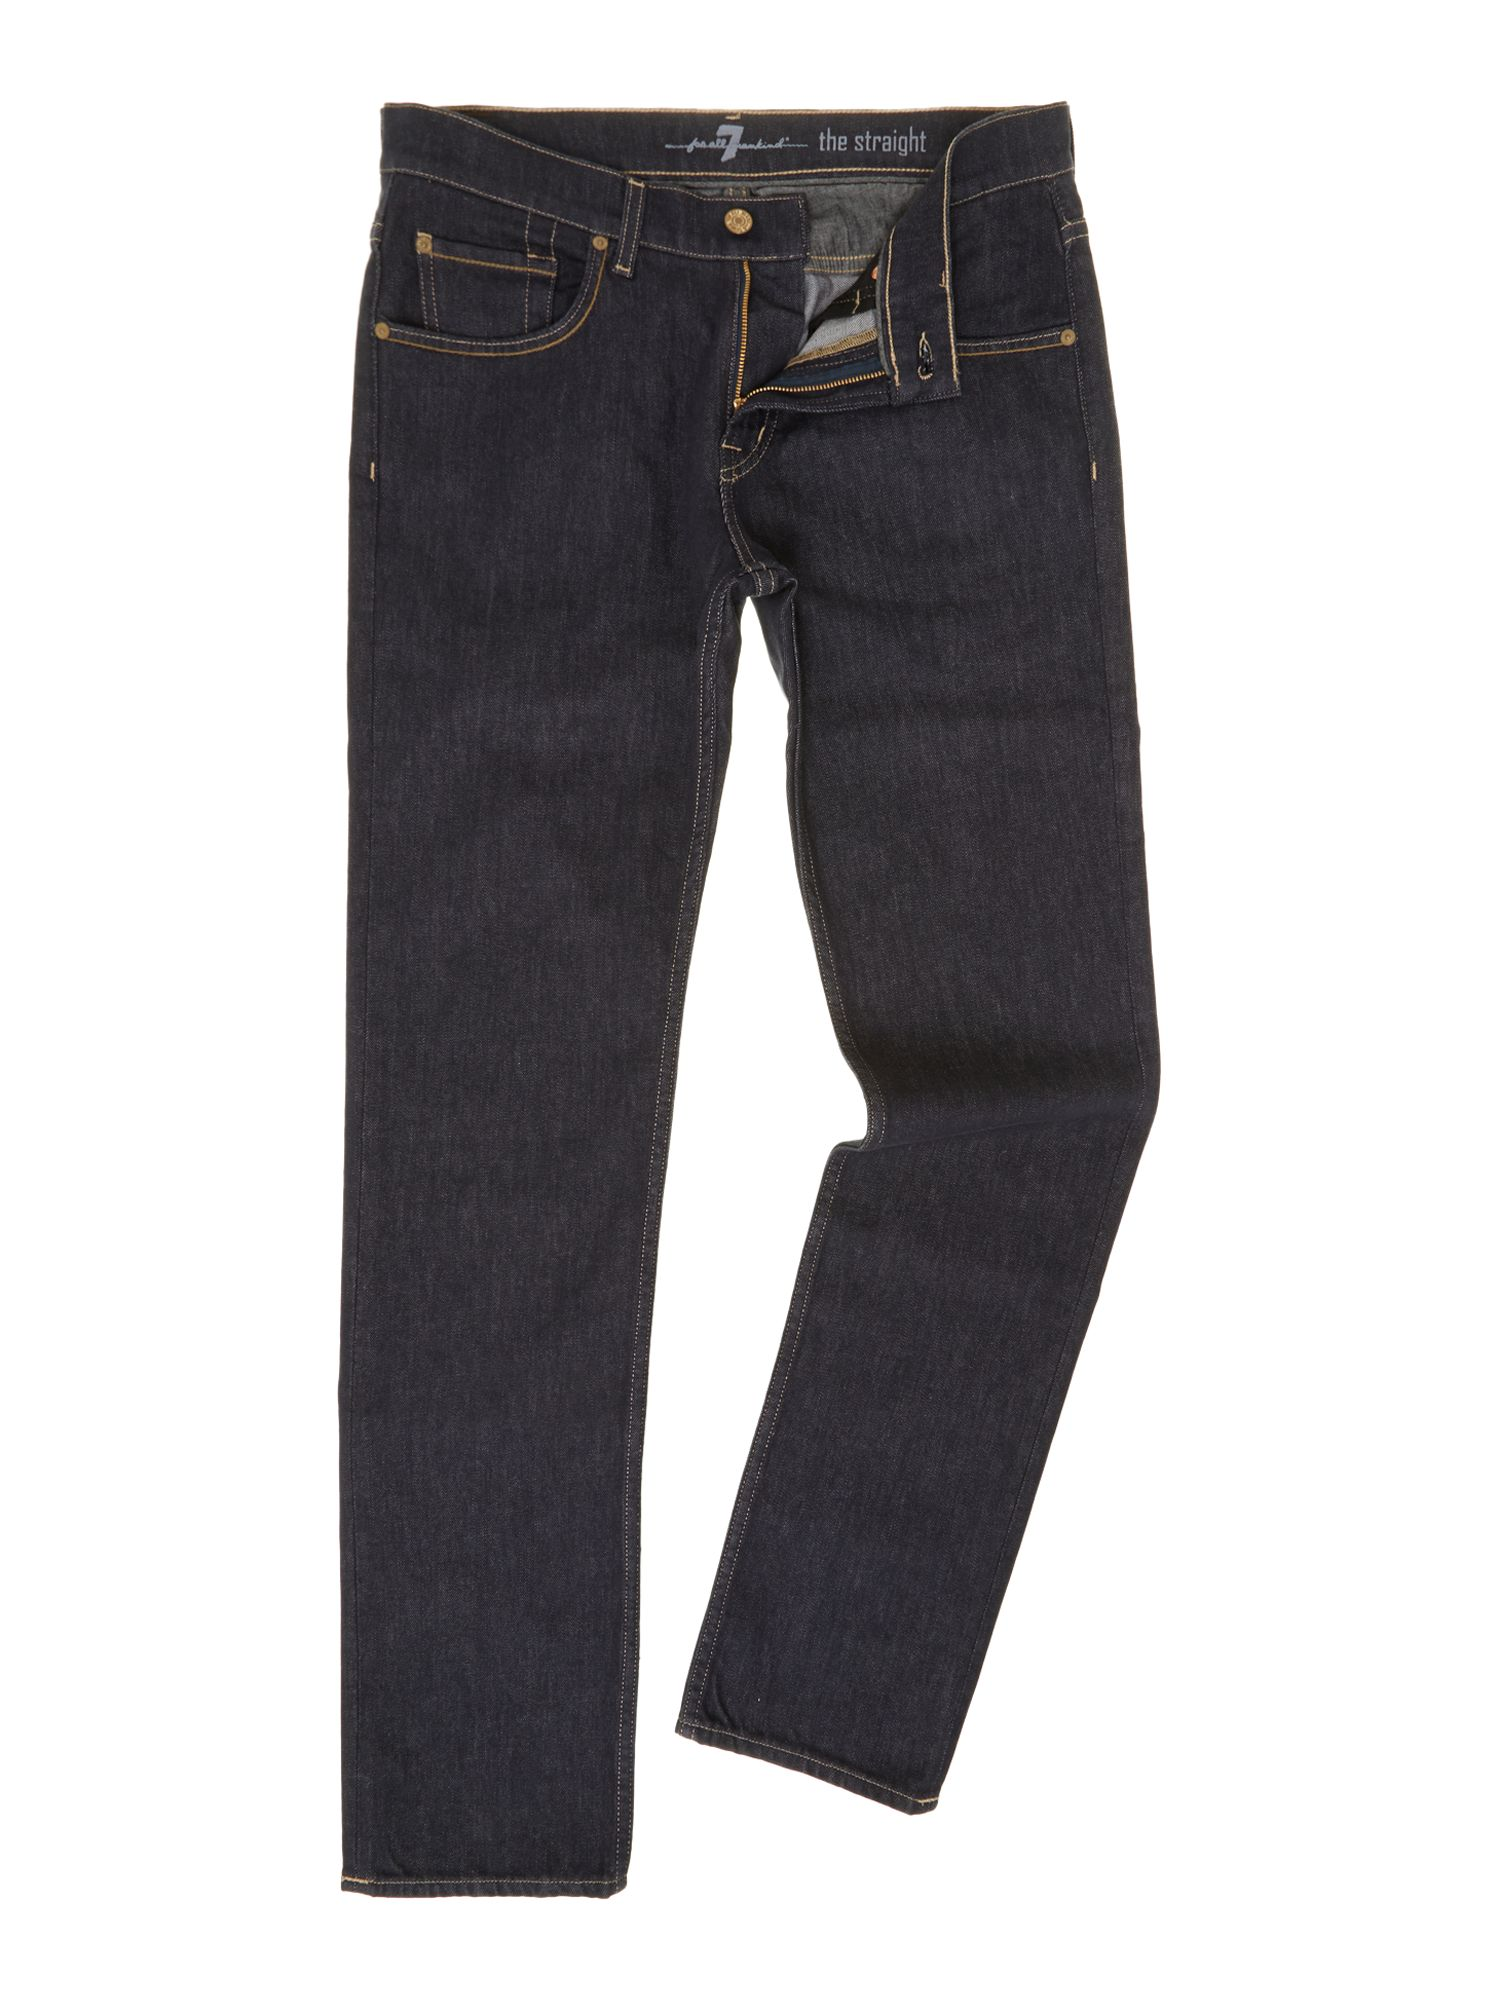 Straight no fade dark wash jean